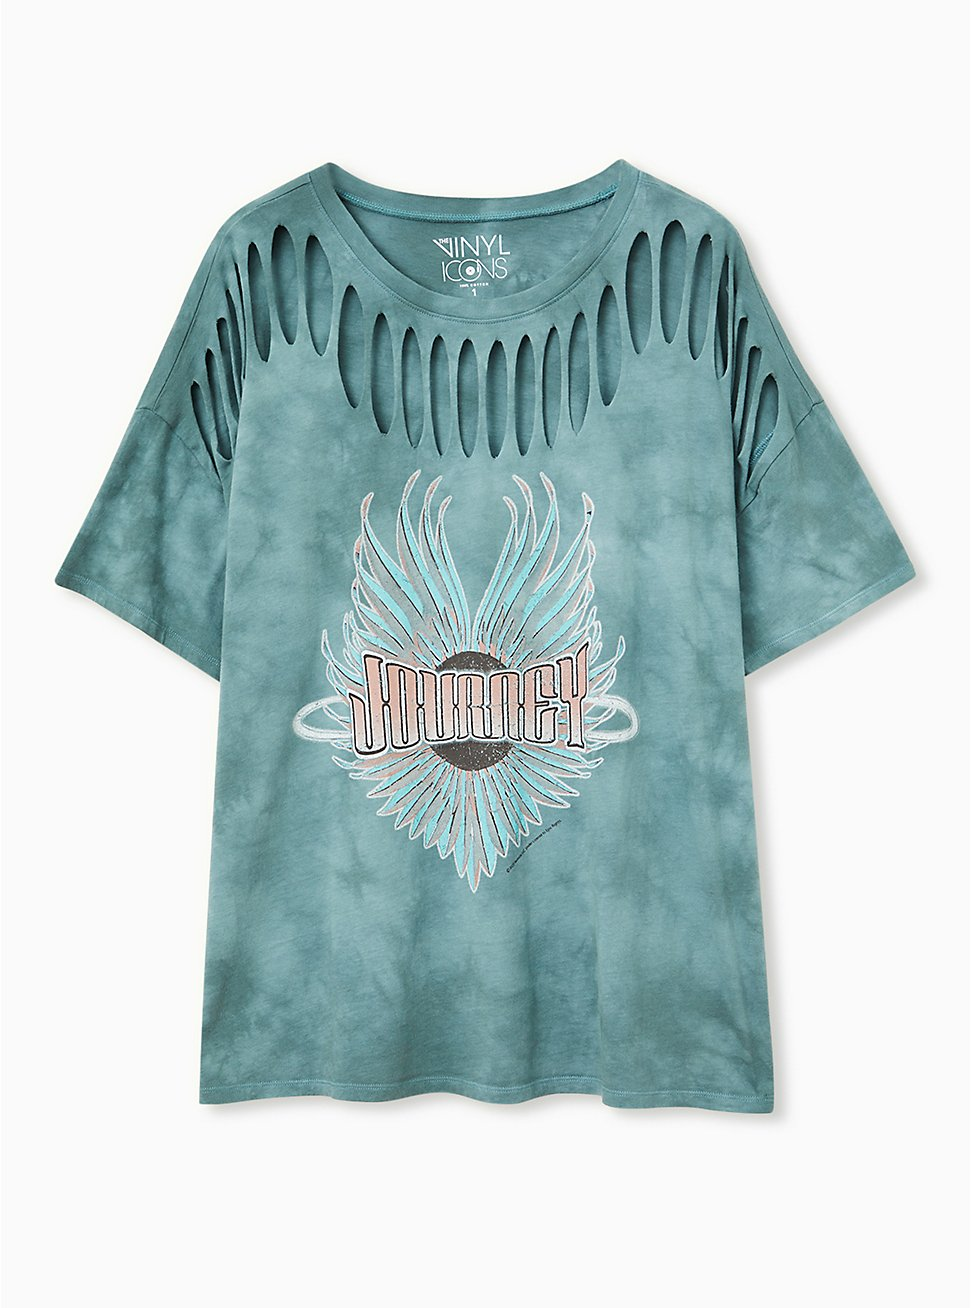 Journey Teal Tie-Dye Cotton Slashed Tee, JUNEBUG, hi-res